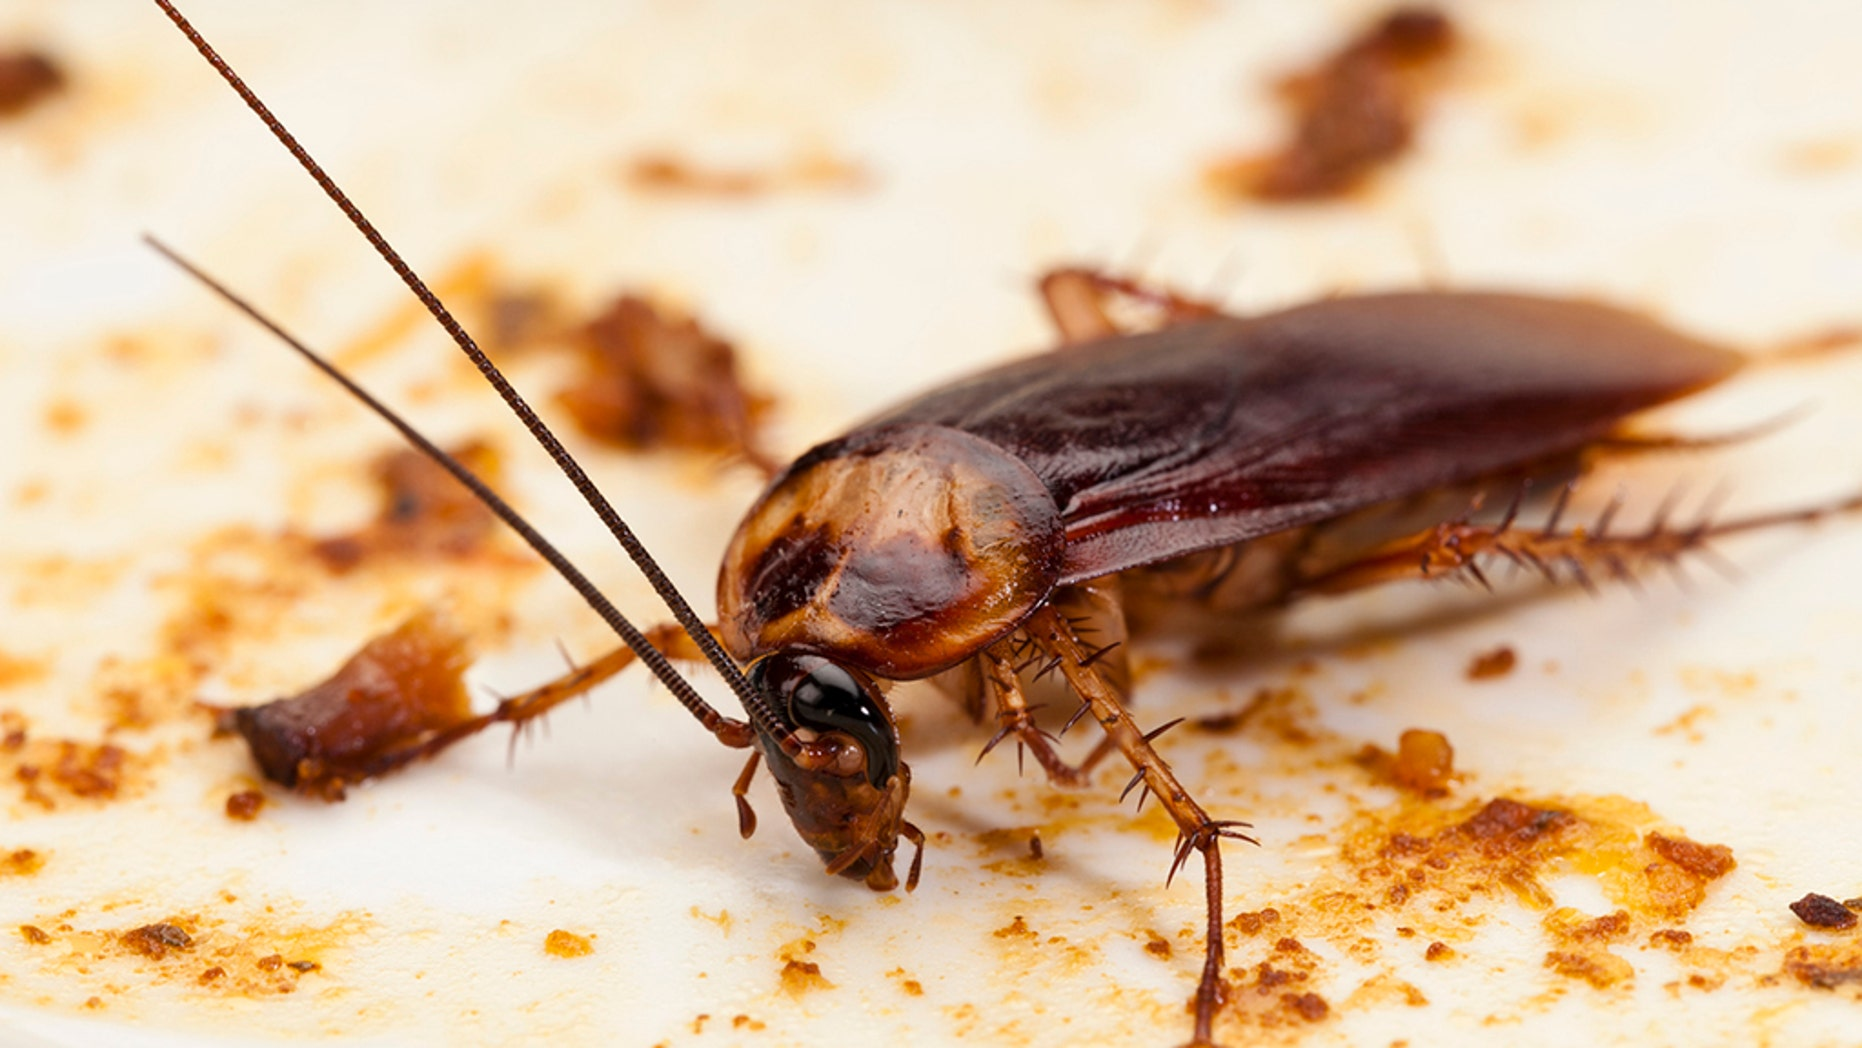 A conservation center in England is offering scorned lovers the opportunity to name a cockroach after their ex.